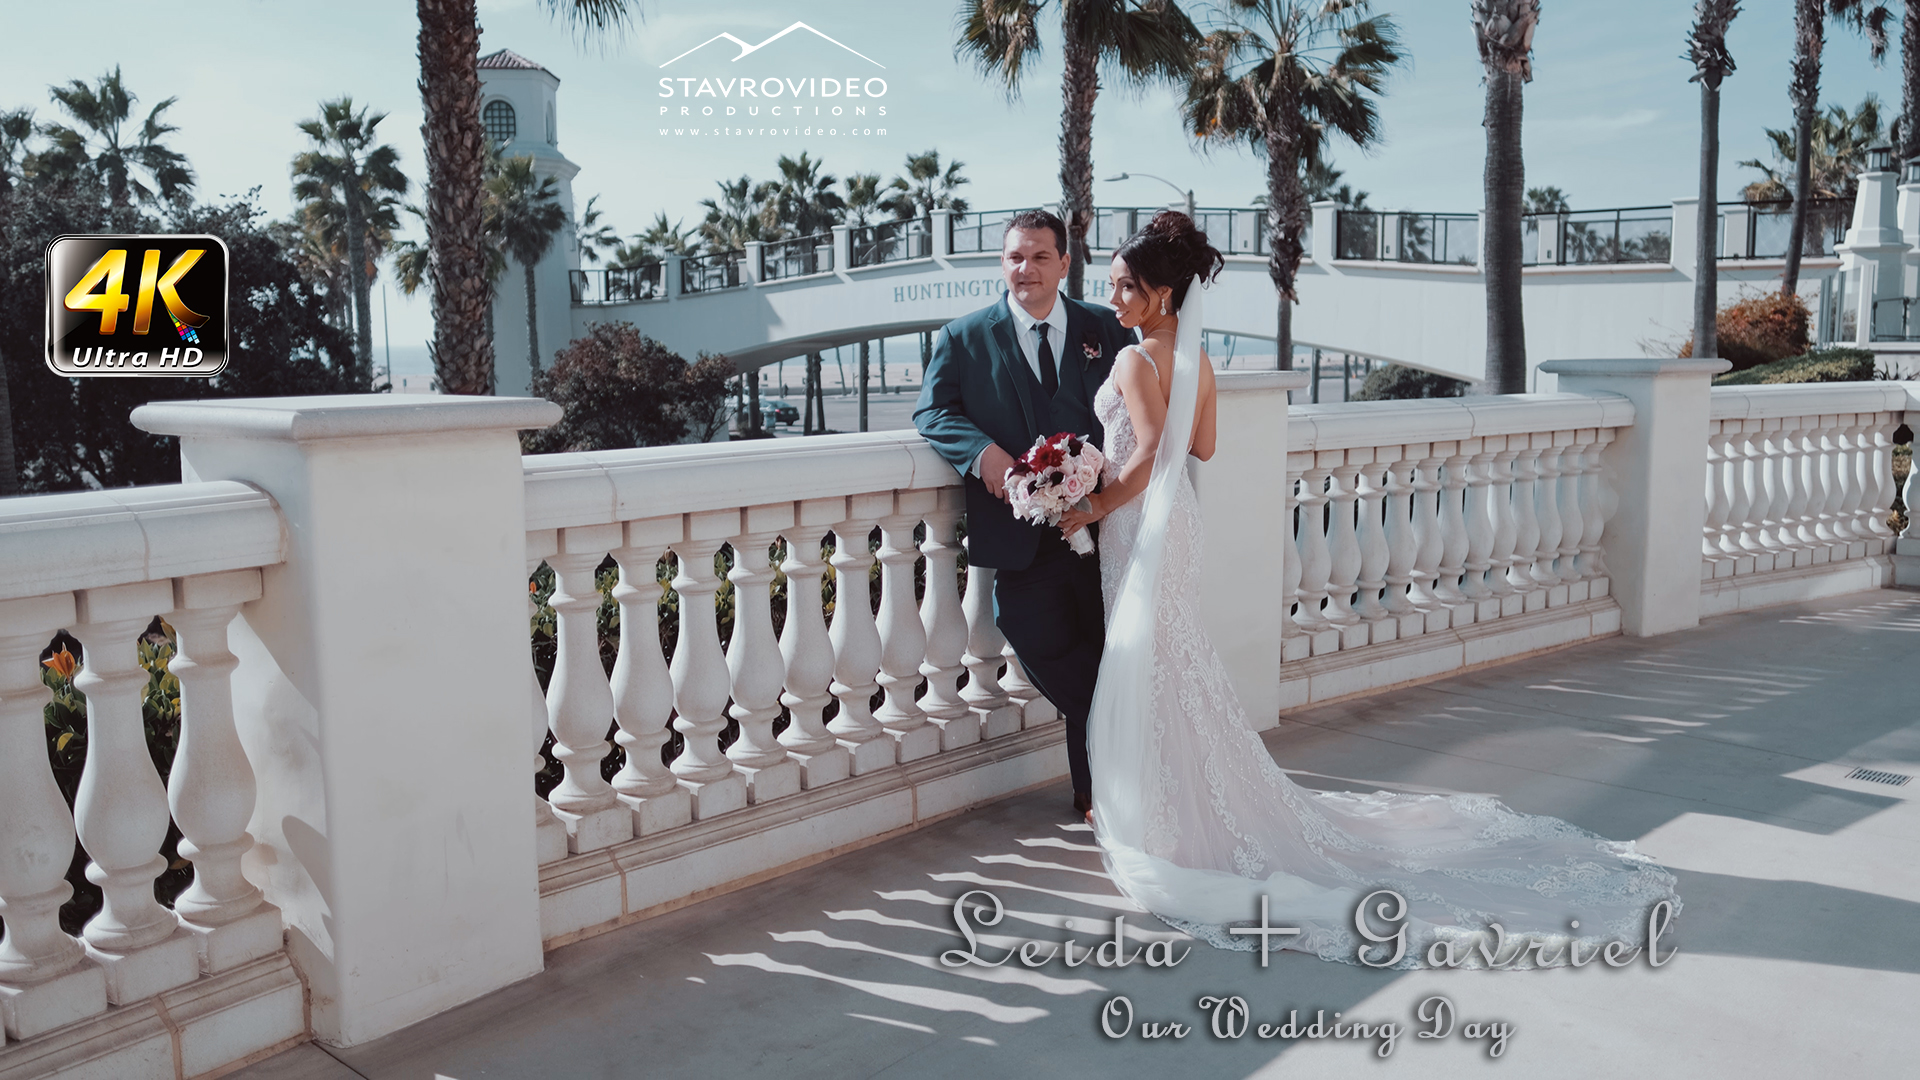 Gavriel  + Leyda | Huntington Beach, California | Hyatt Huntington Beach